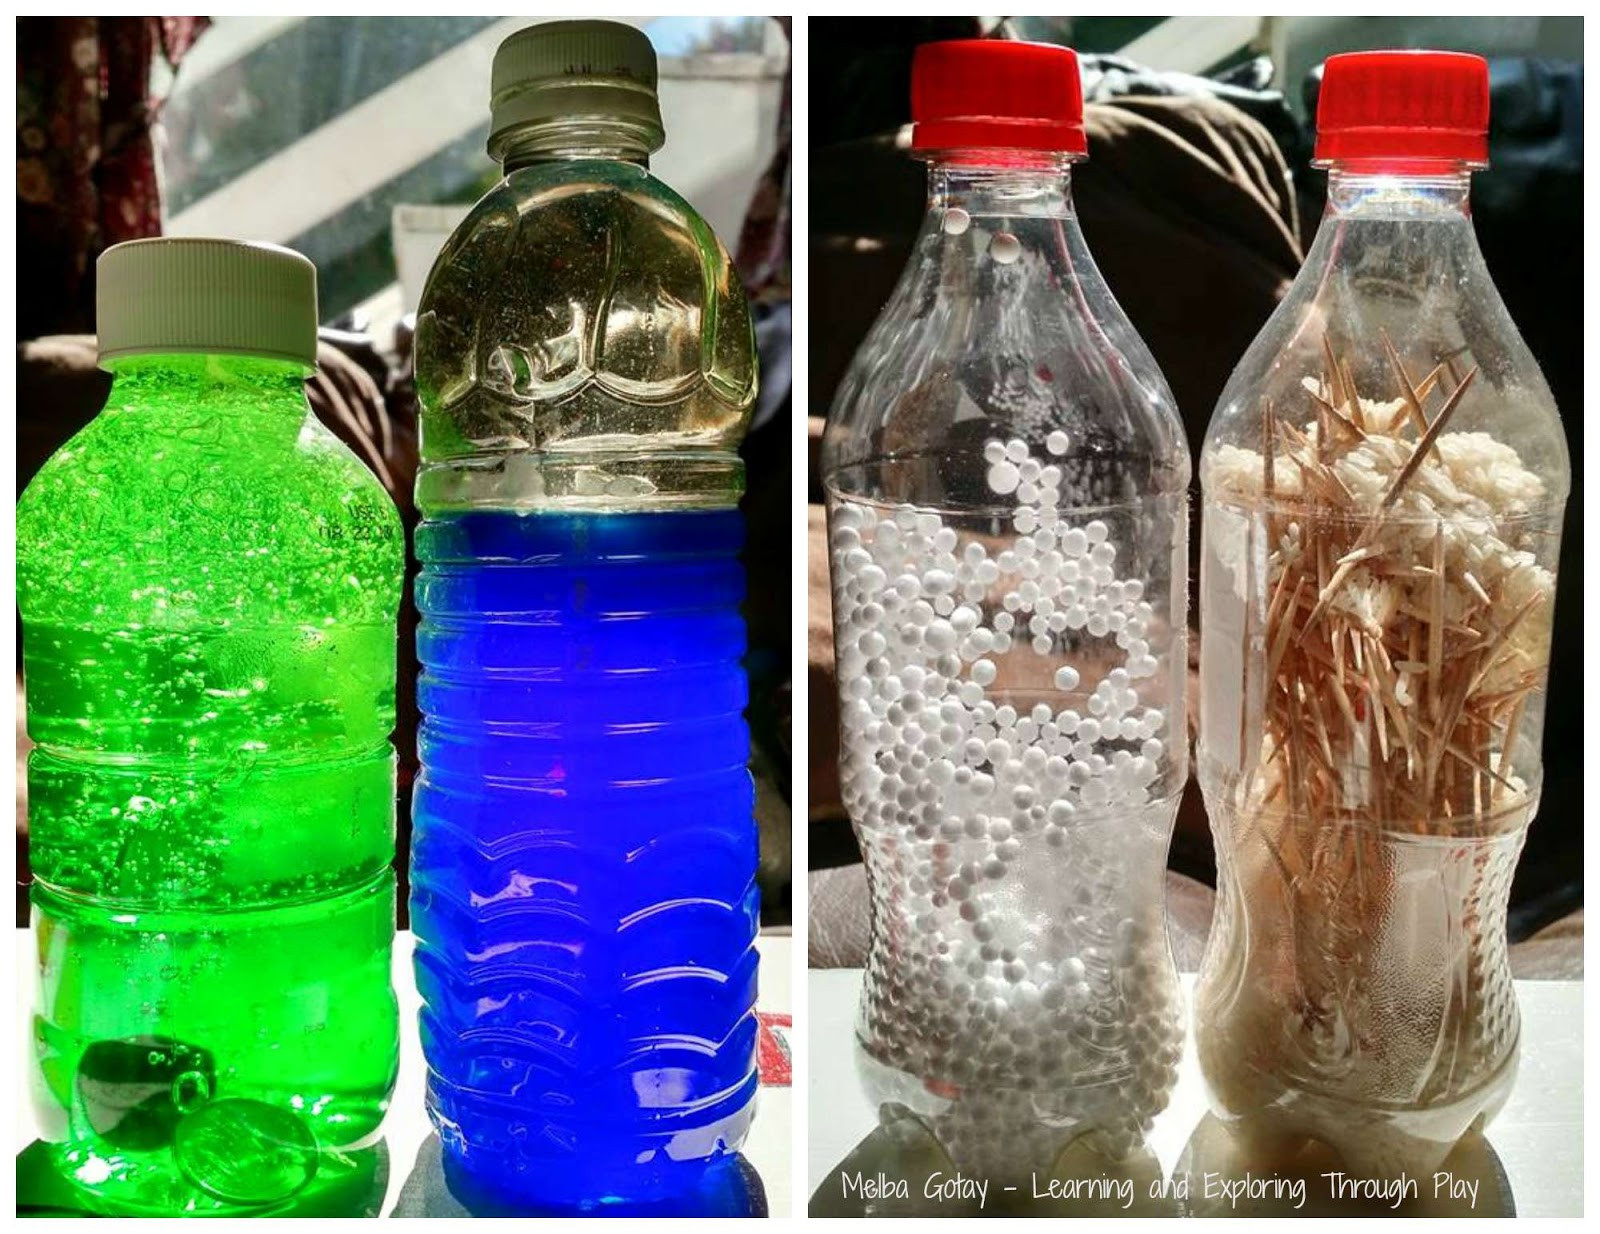 Best ideas about DIY Sensory Bottles . Save or Pin Learning and Exploring Through Play DIY Sensory Bottles Now.